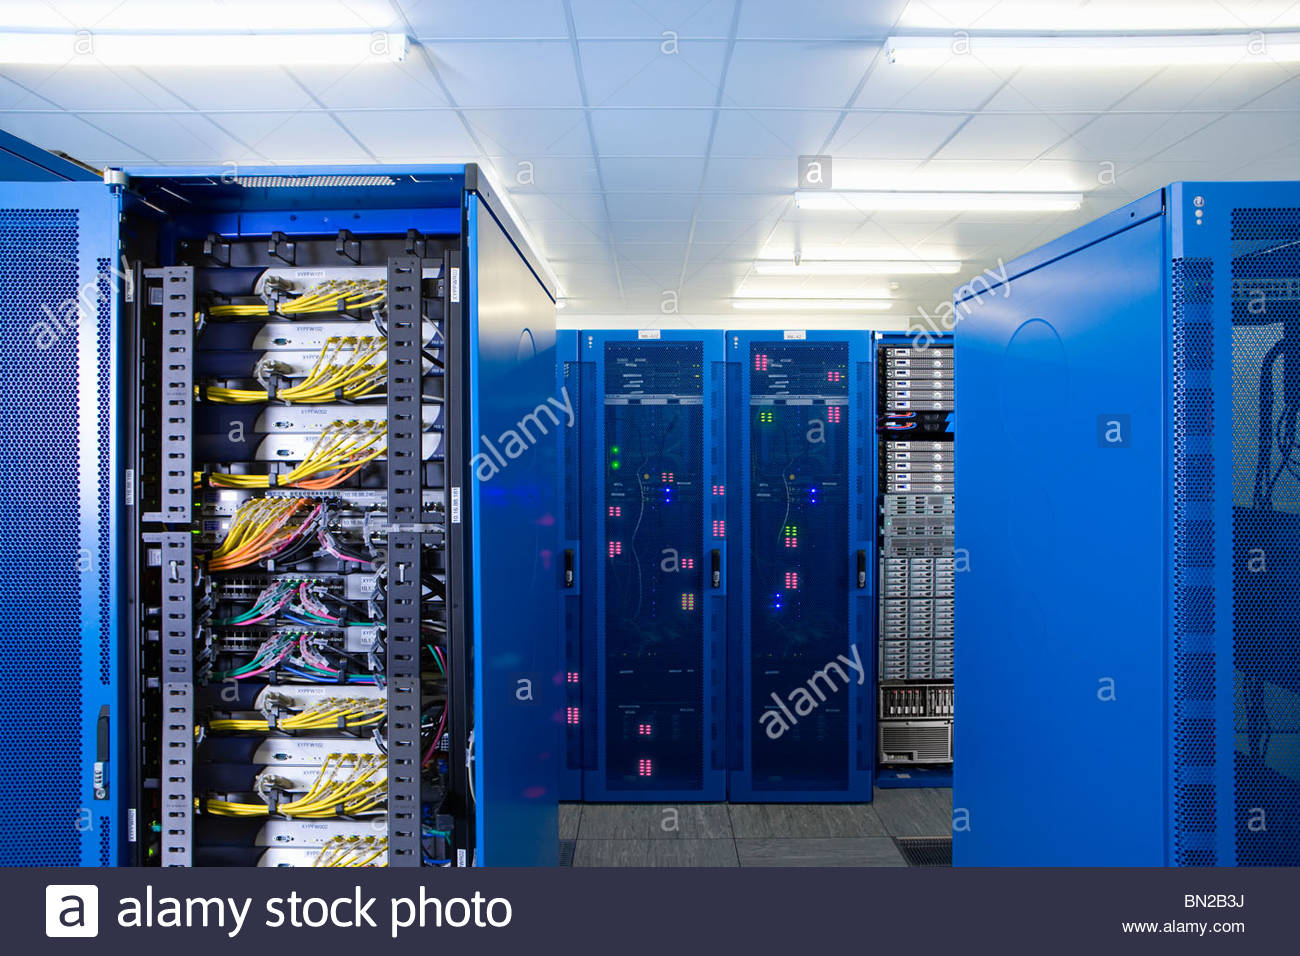 Mainframe computers in network server room - Stock Image